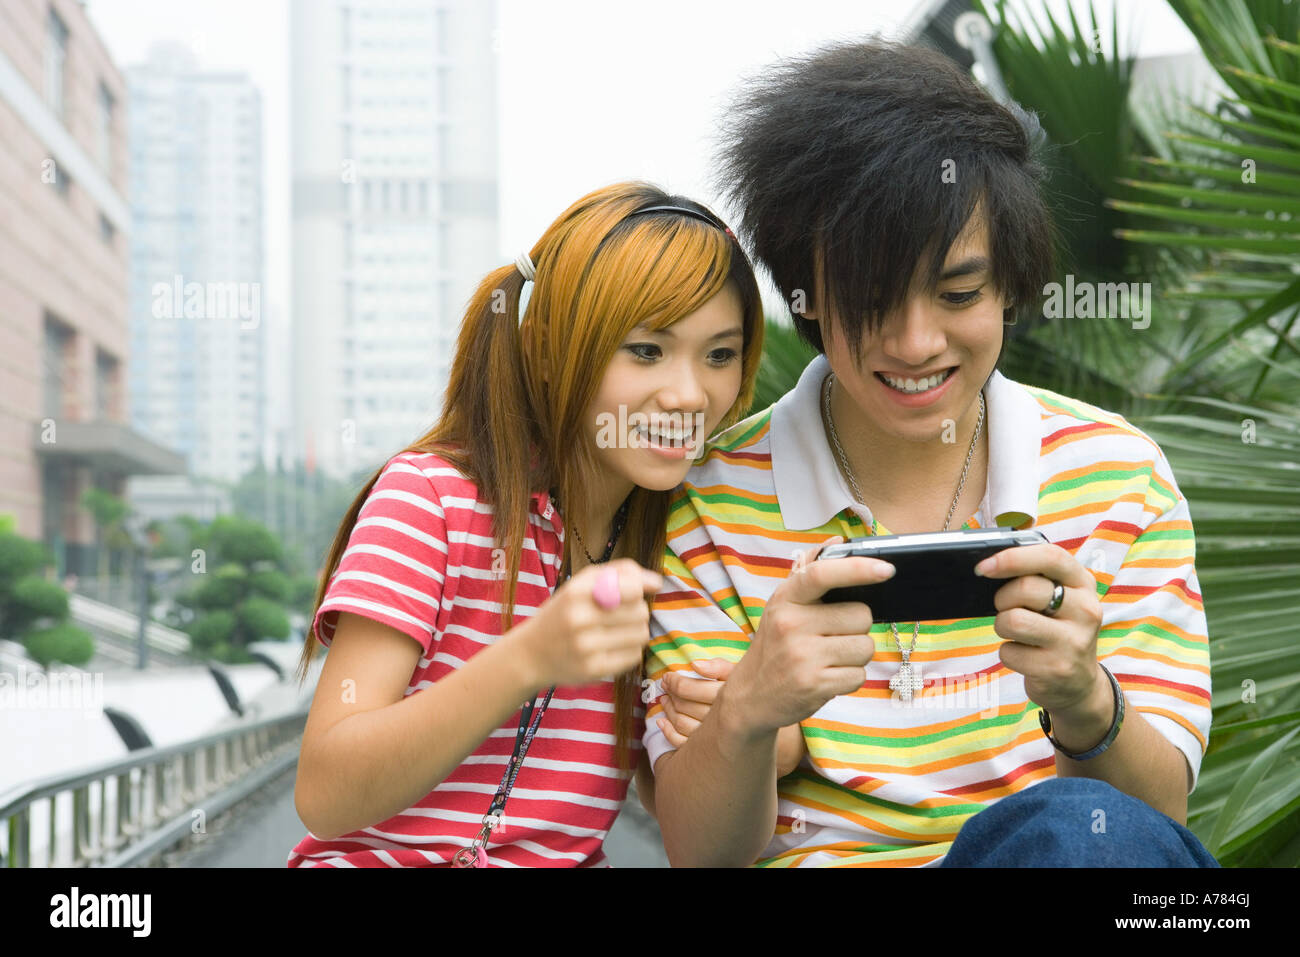 Teenage couple playing with handheld video game, outdoors Stock Photo